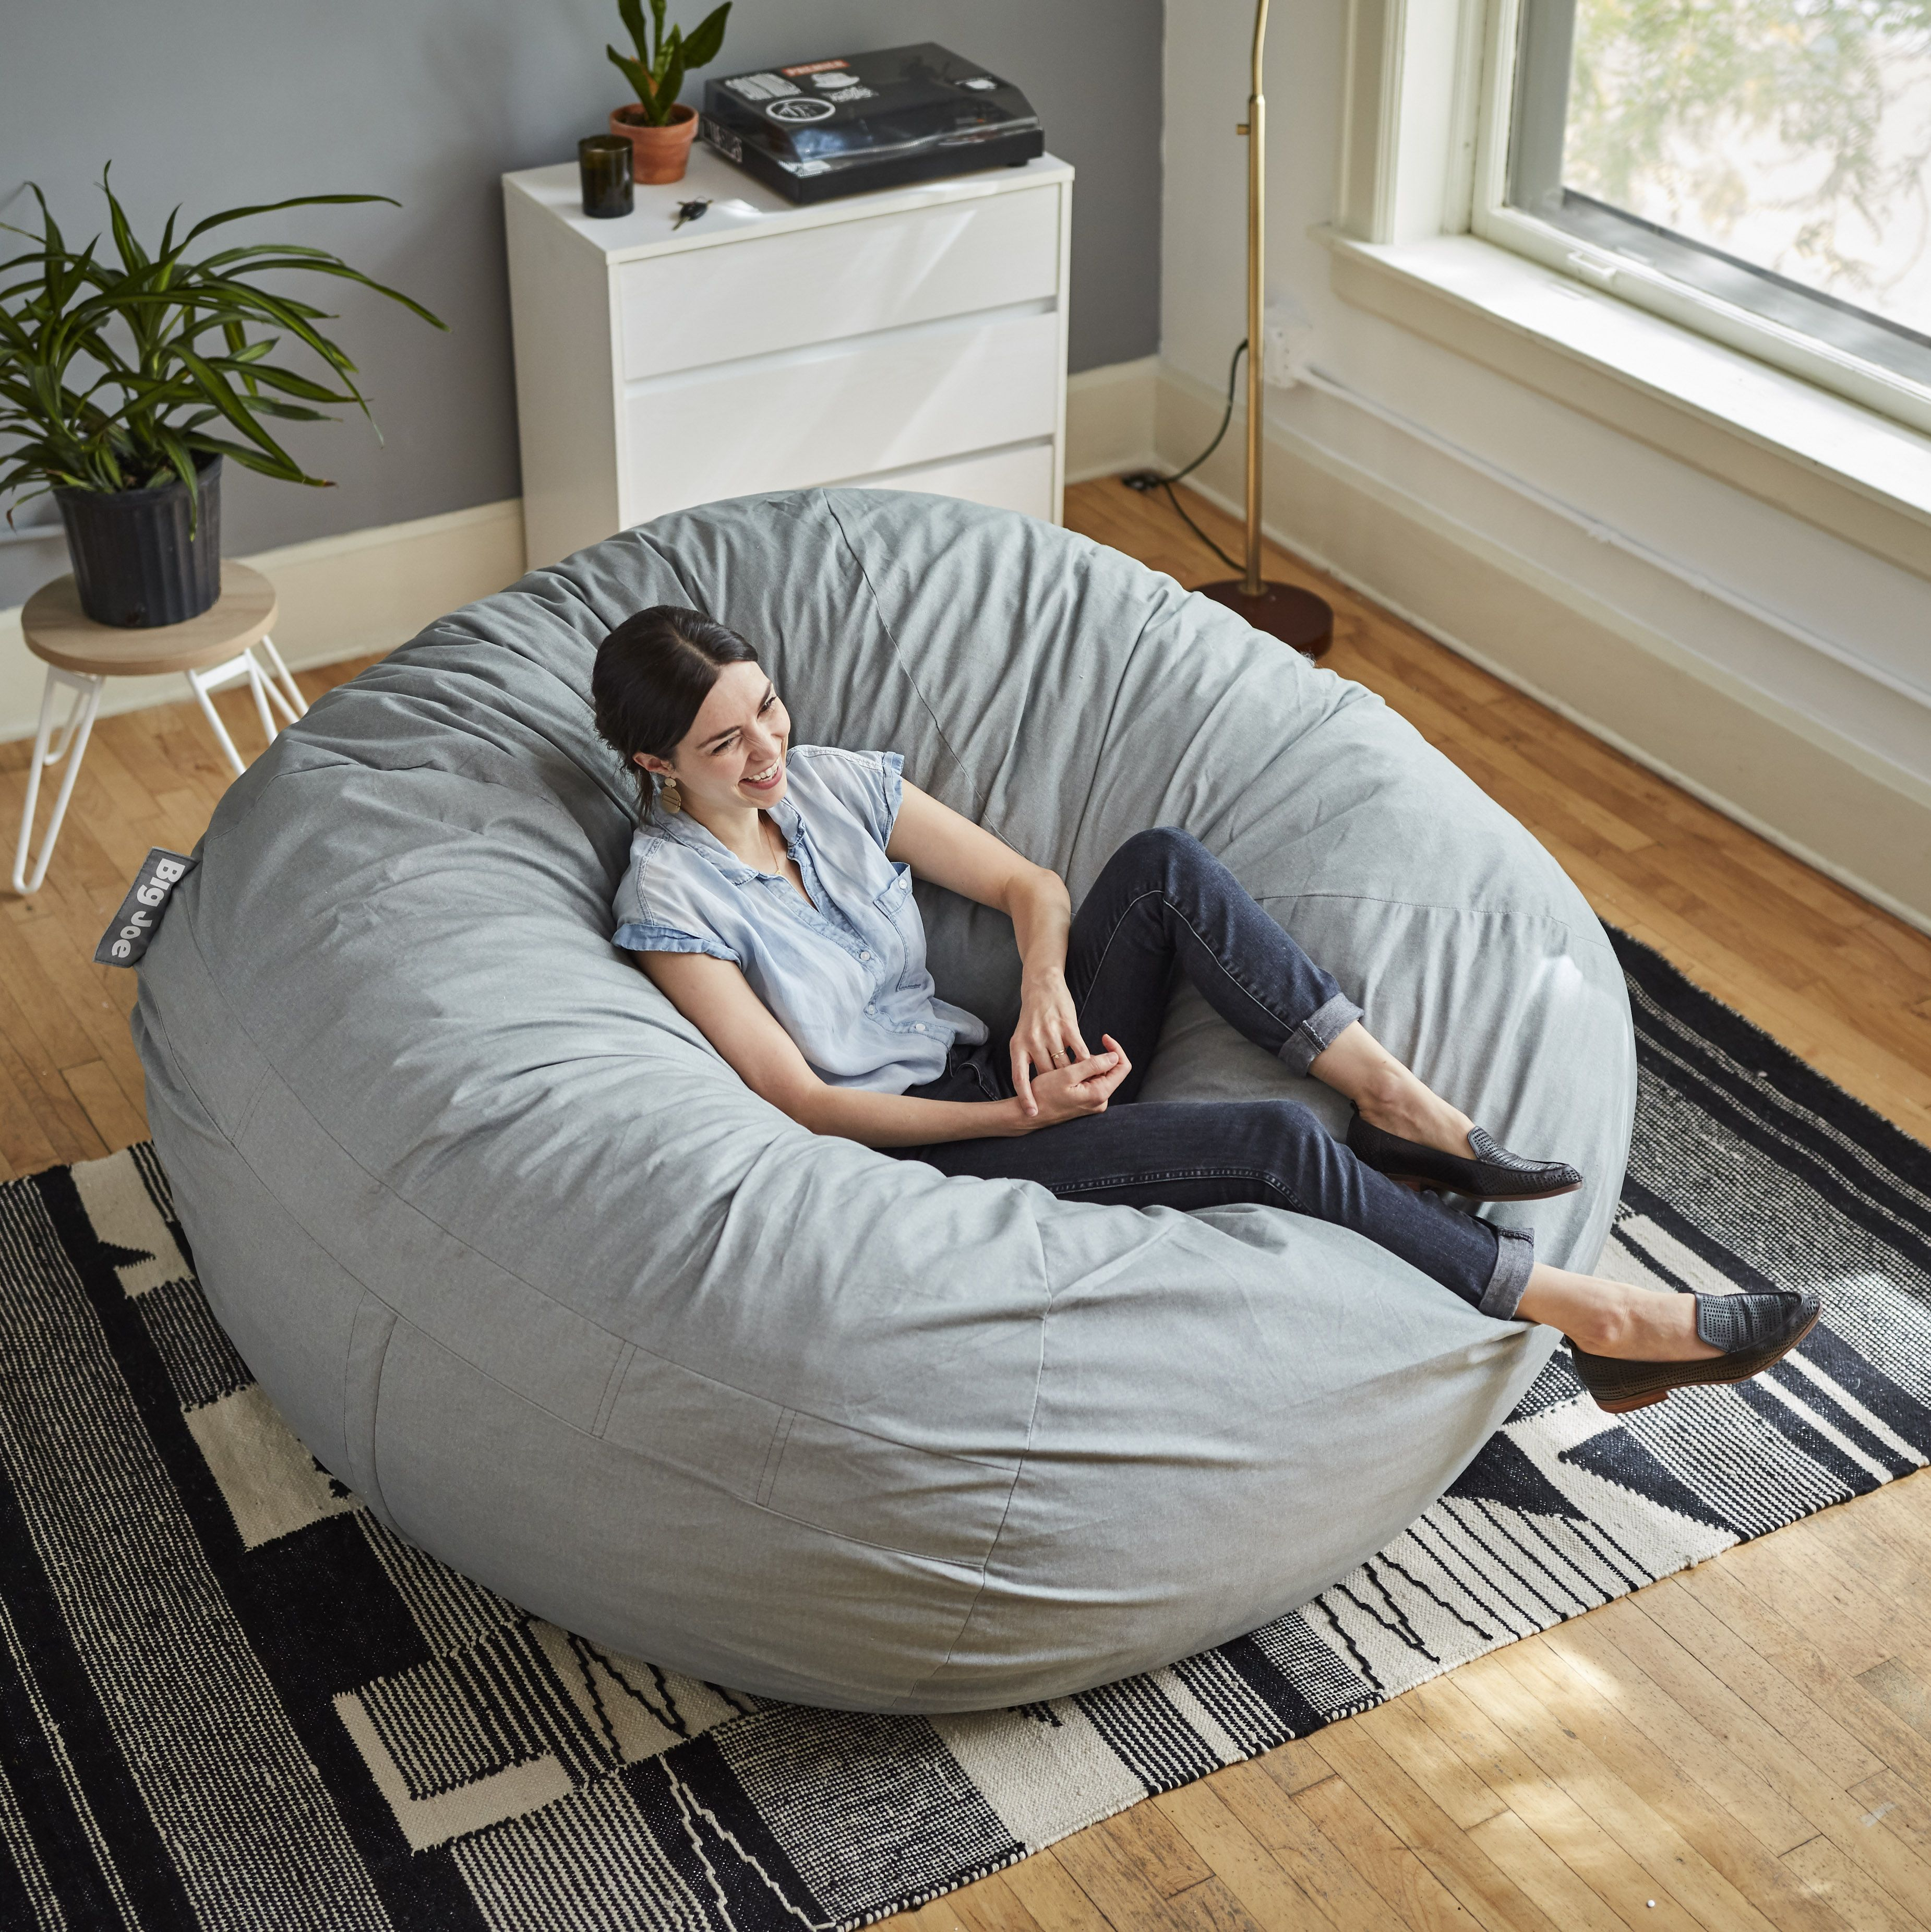 Pin By Nev On Idees Gia To Spiti In 2020 Bean Bag Chair Chill Room Big Bean Bag Chairs